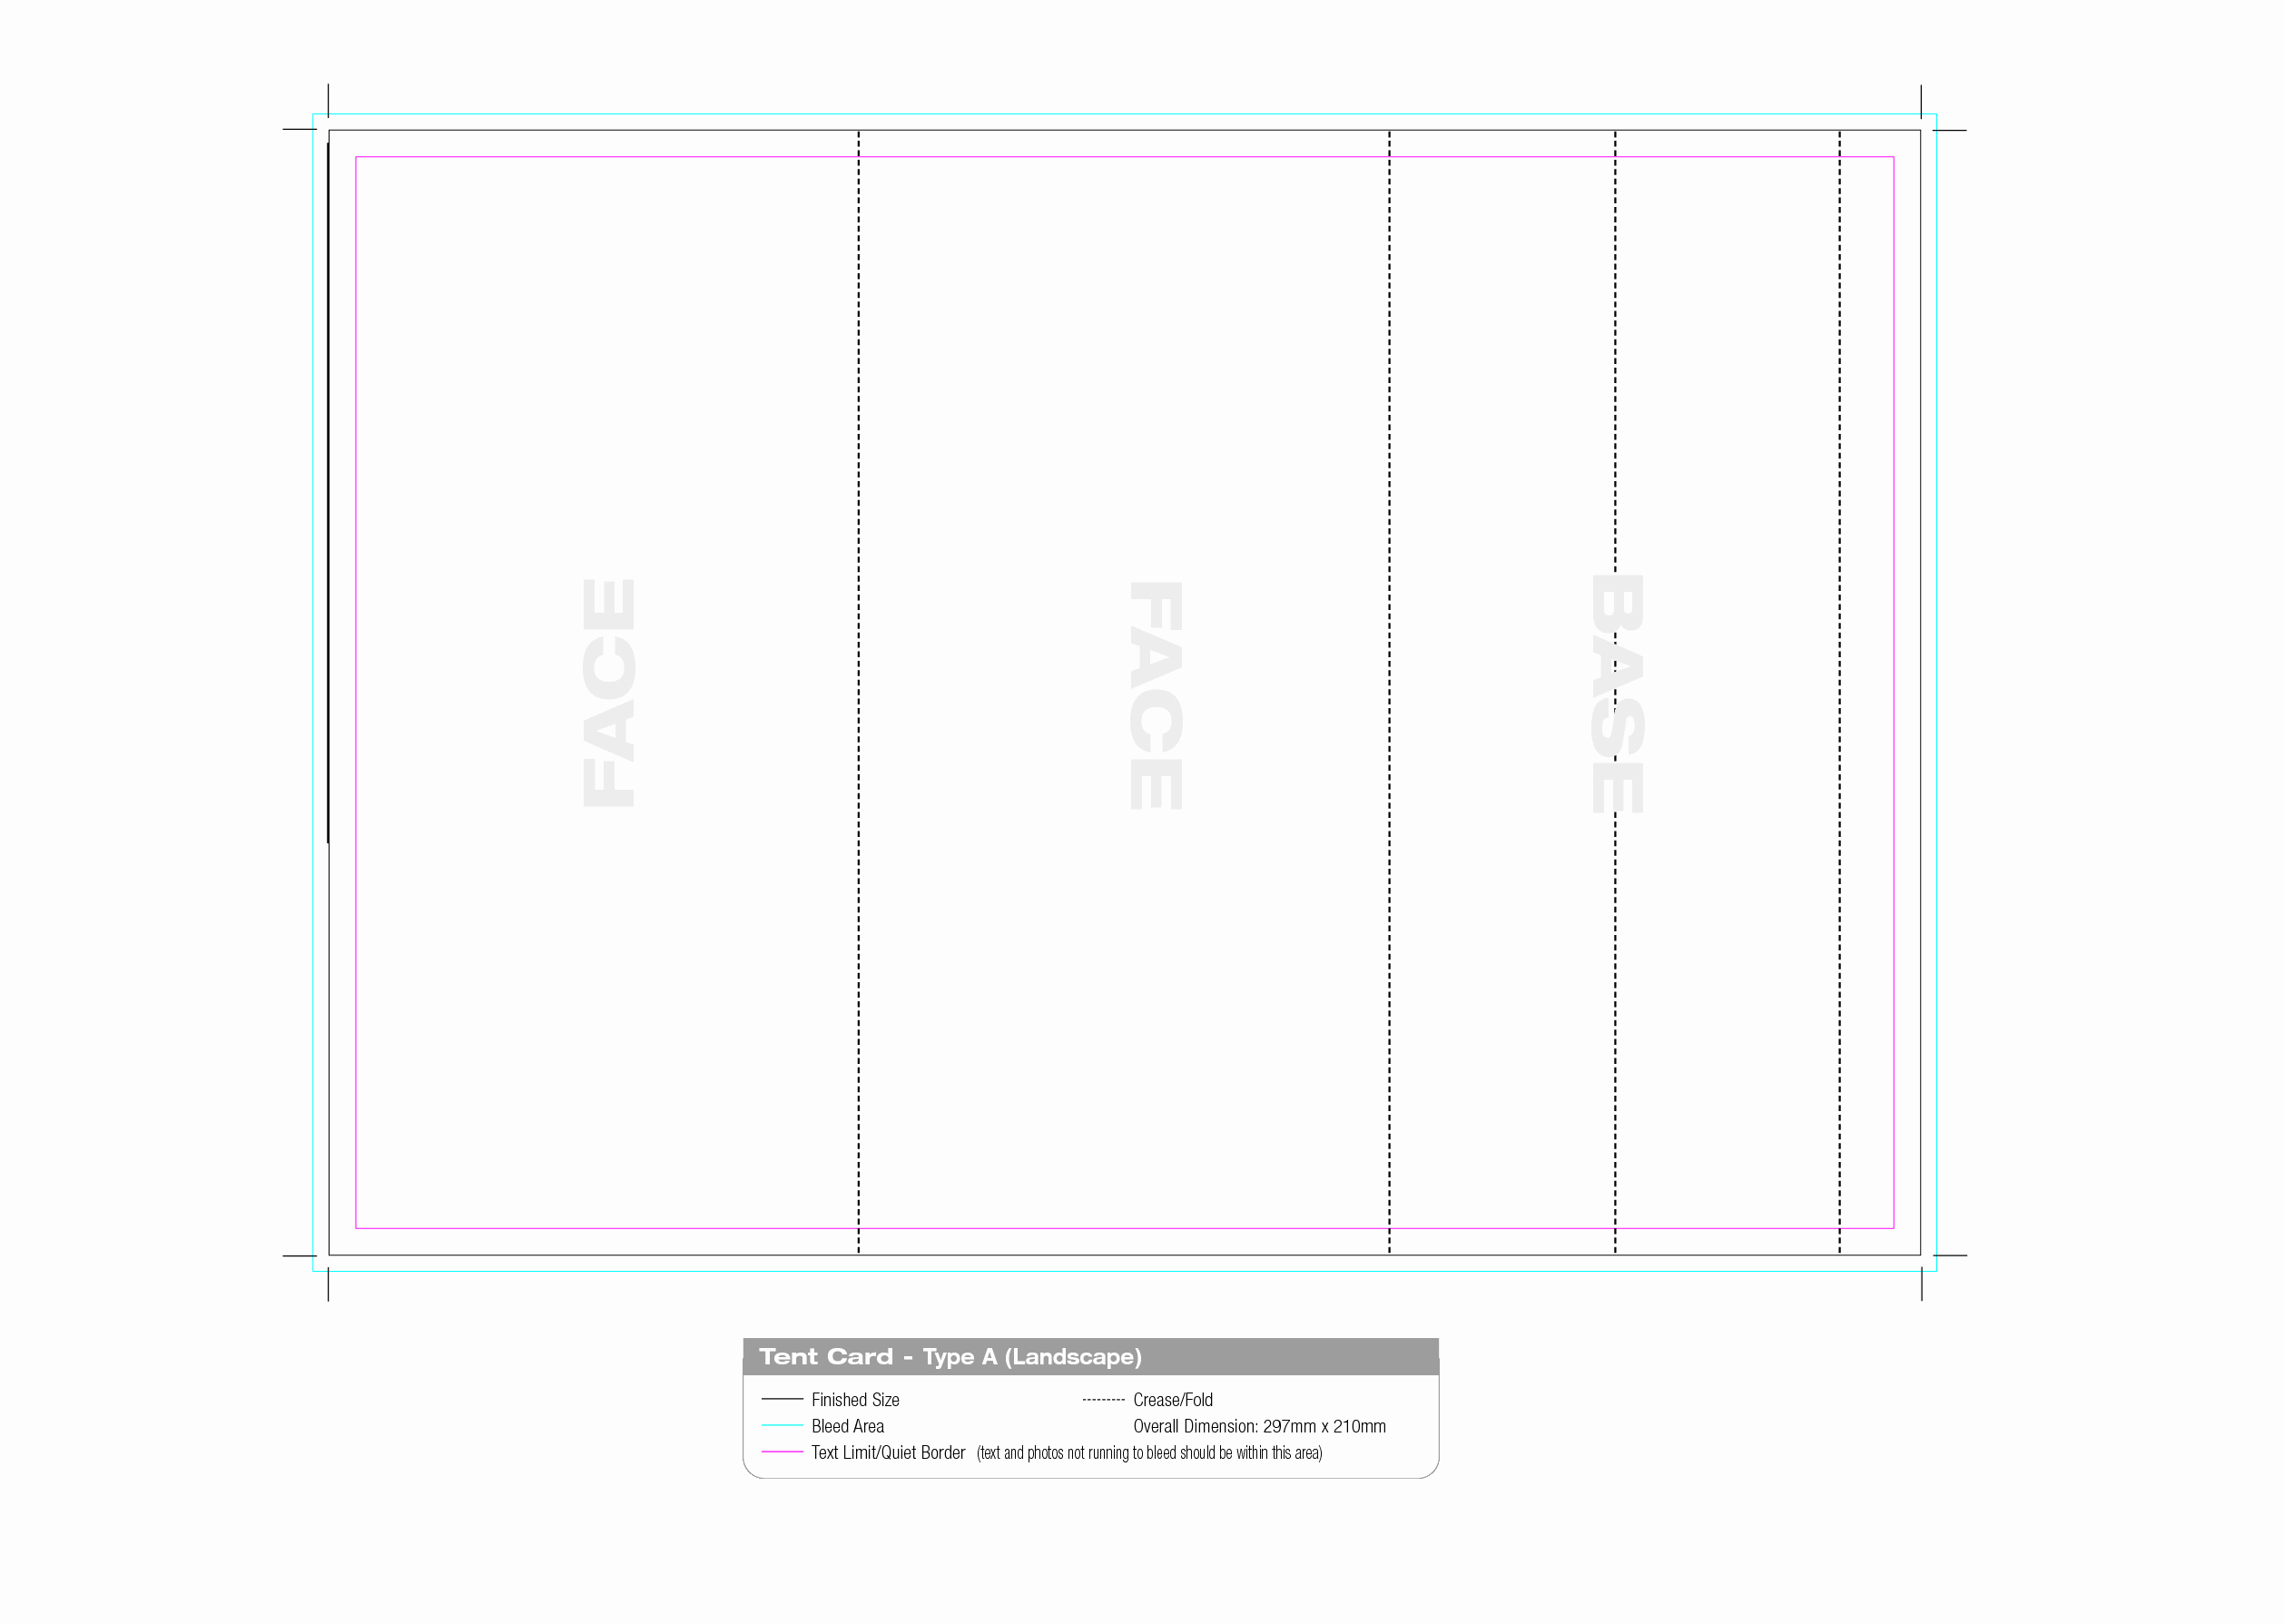 Double Sided Tent Card Template Inspirational Tent Card Template